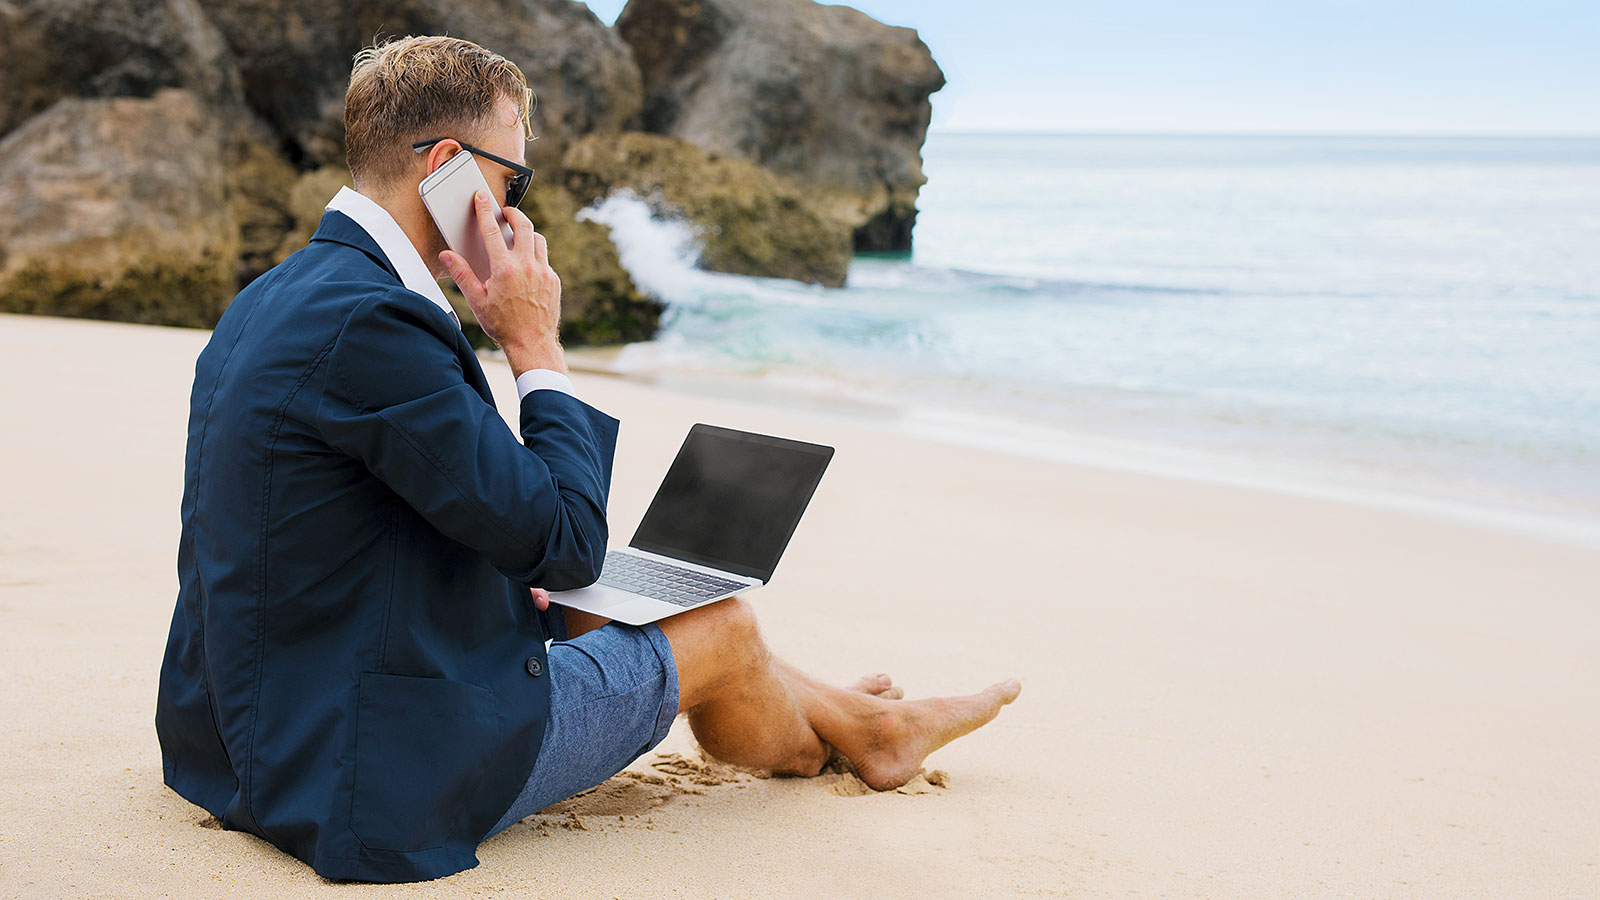 15 remote jobs hiring right now and will let you work from anywhere